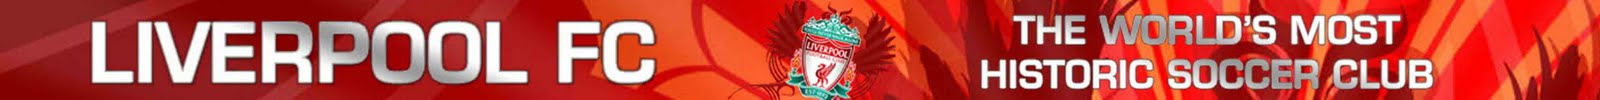 LIVERPOOL FOOTBALL FACTS